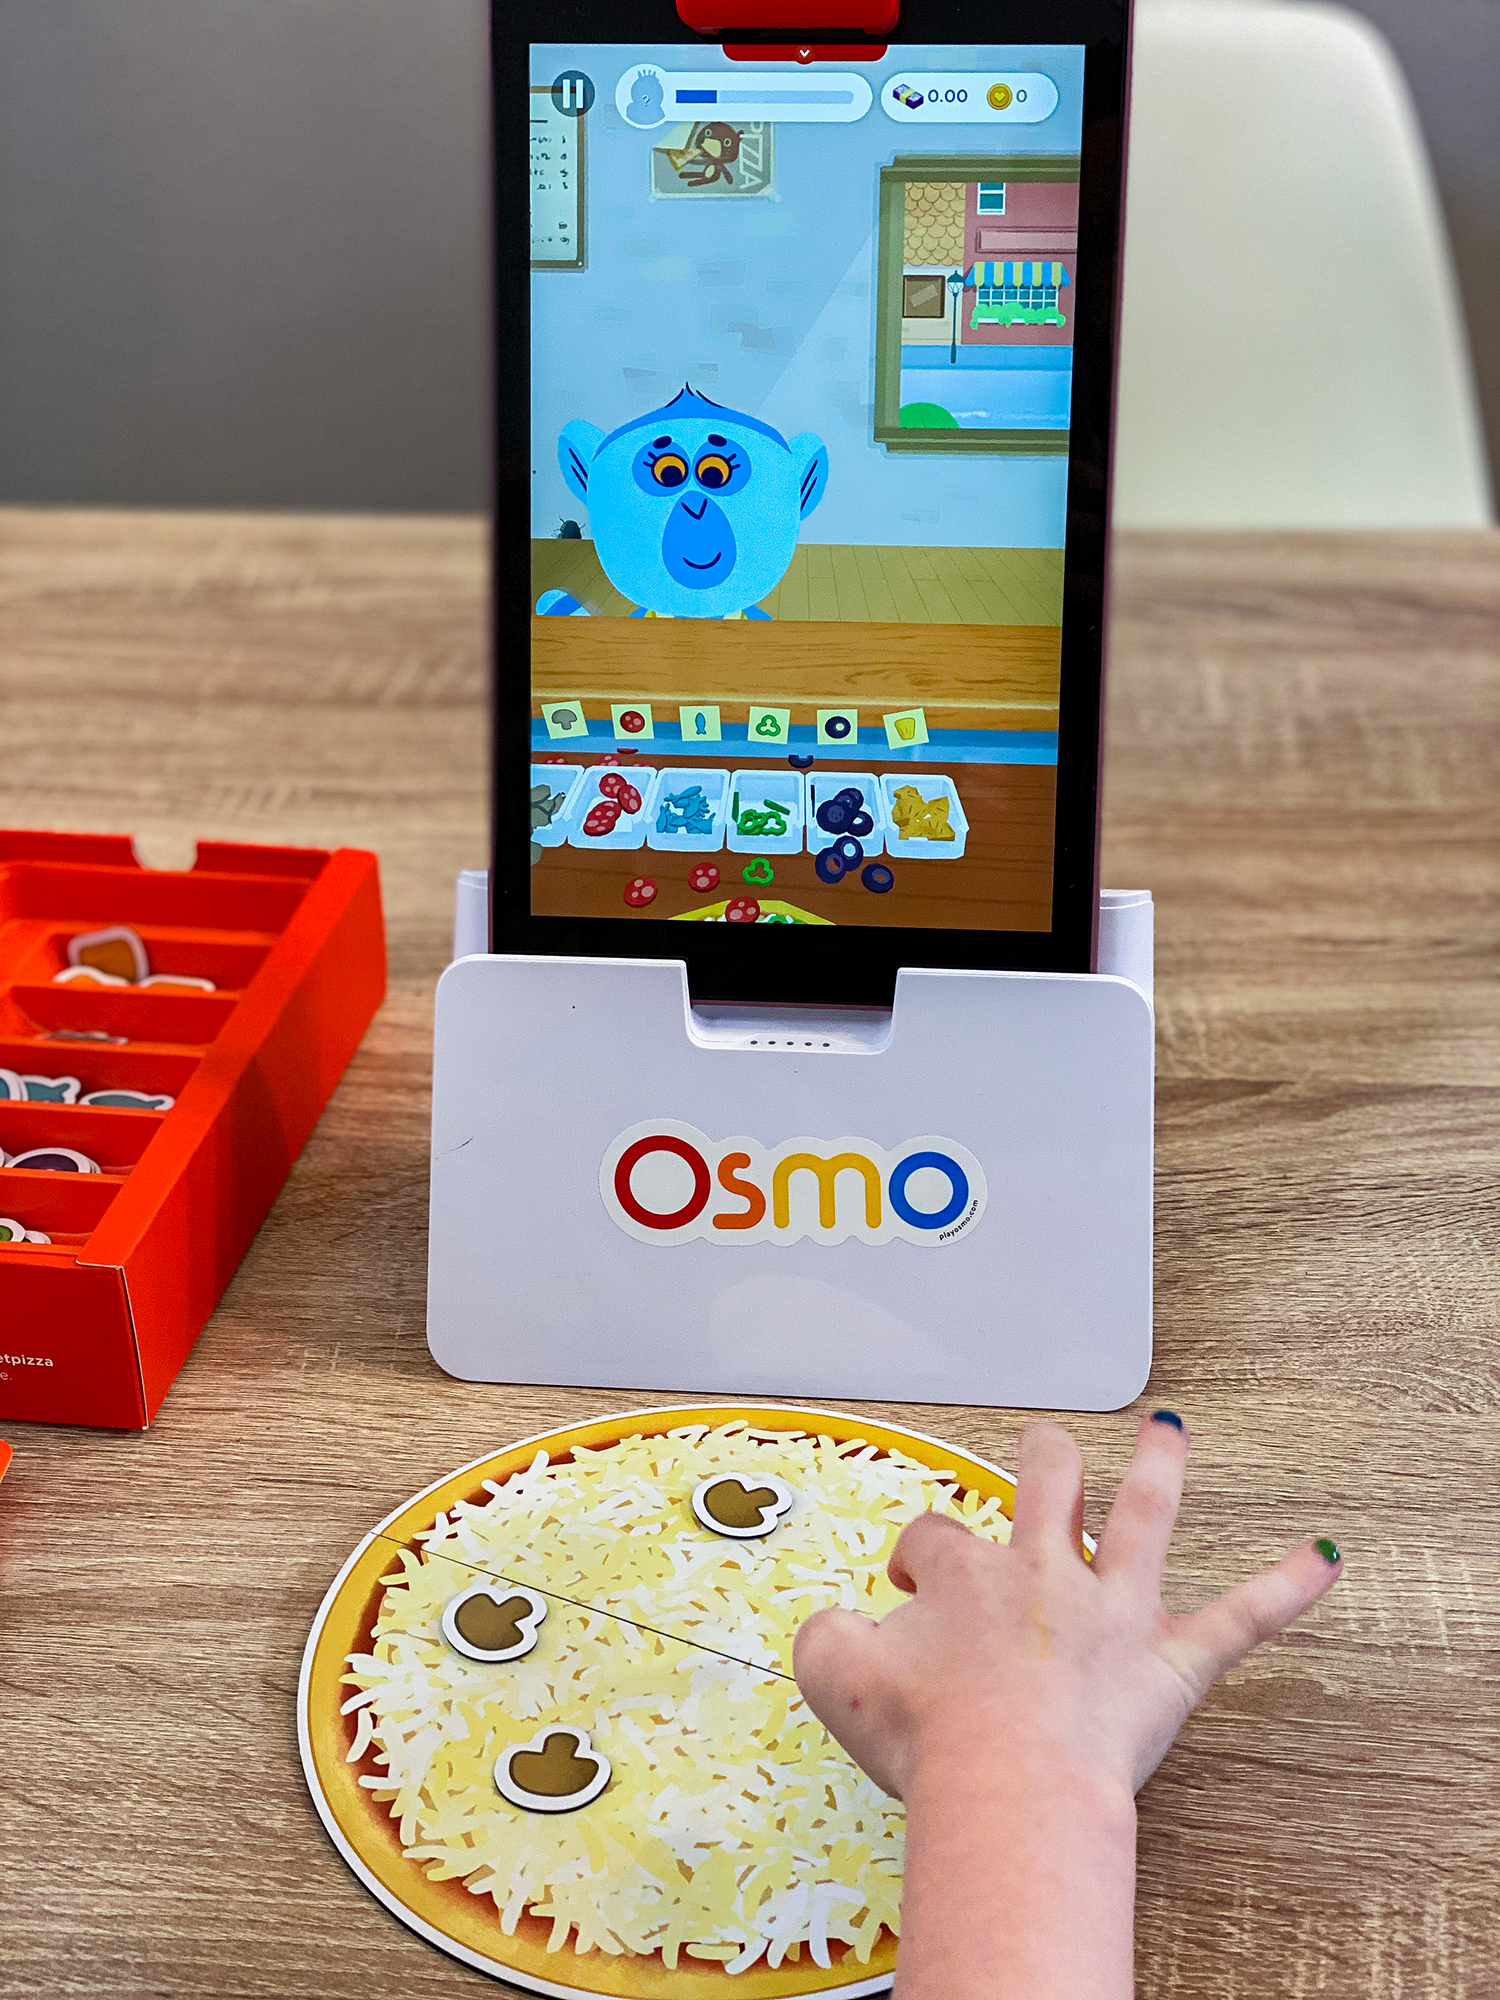 Looking for an Osmo review and guide? This review from an elementary school teacher will tell you how to use your Osmo and what ages each game is perfect for!